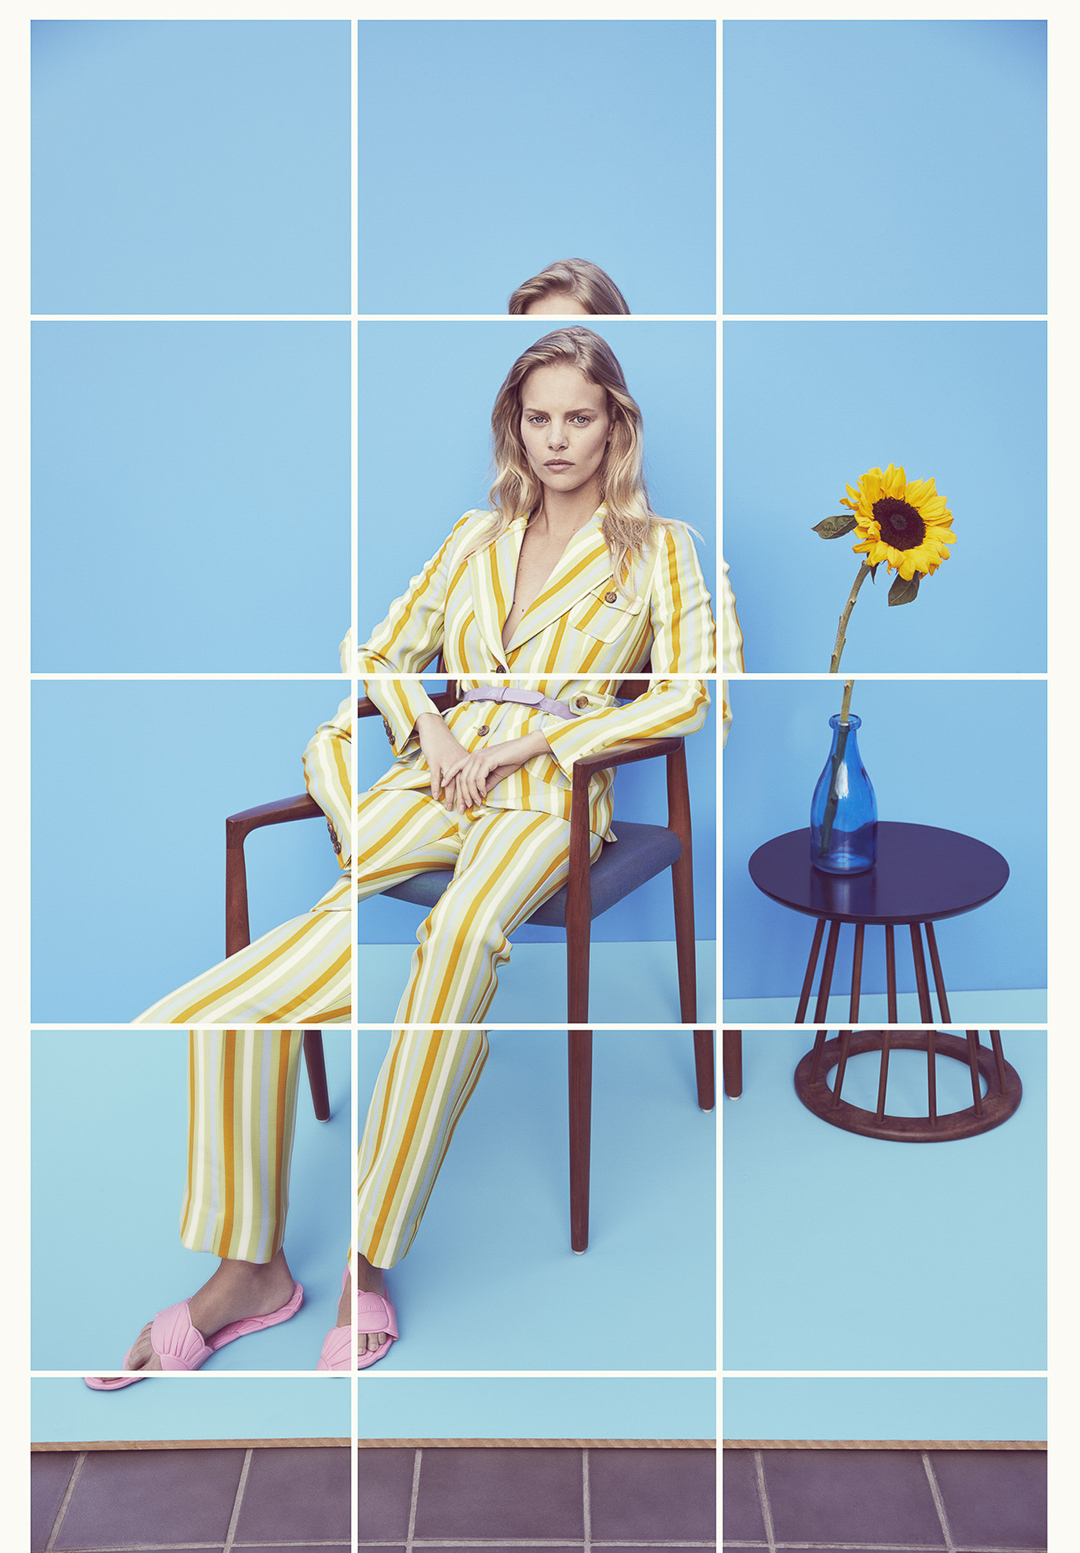 a Fashion shoot of a woman sitting in a chair